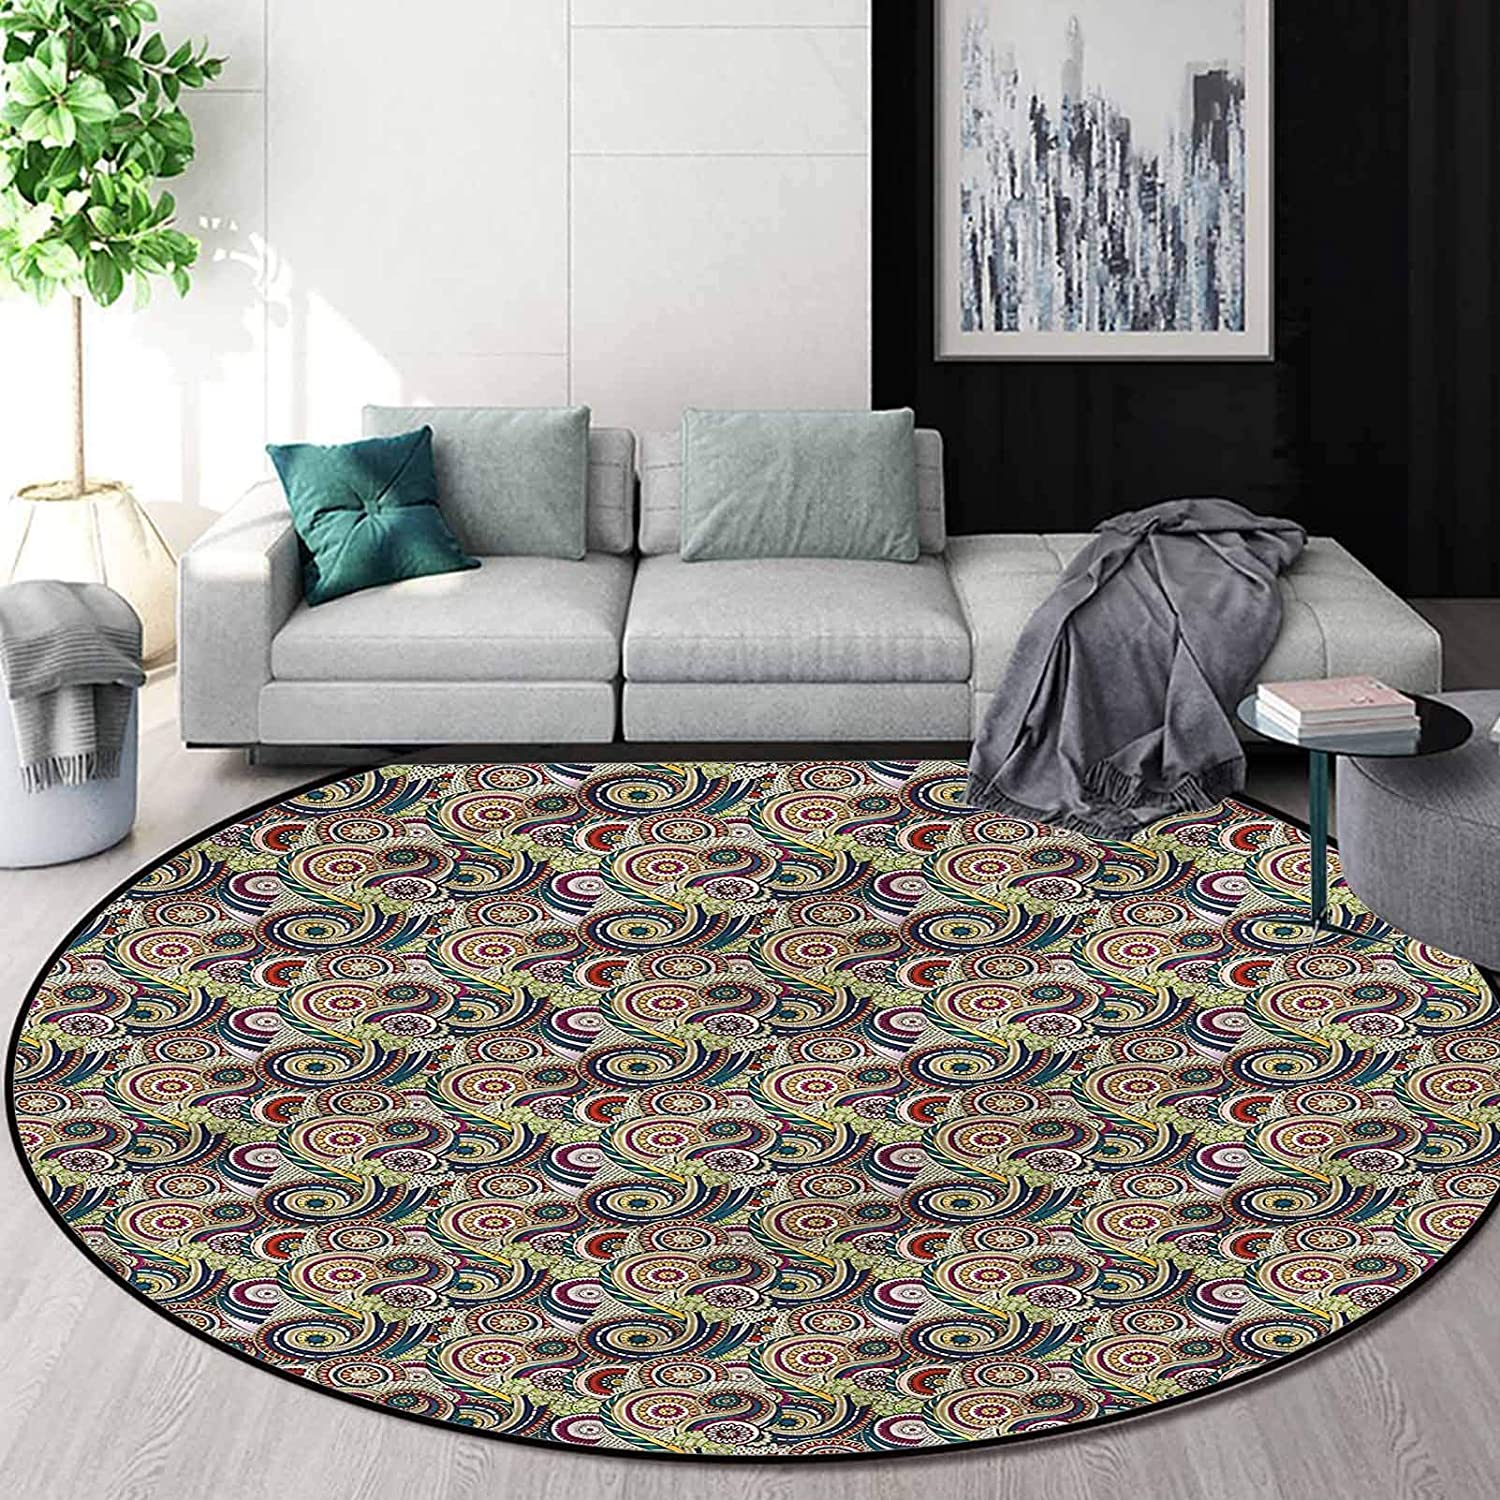 Abstract Accent Rug 6 Ft, Doodle Paisley Carpet